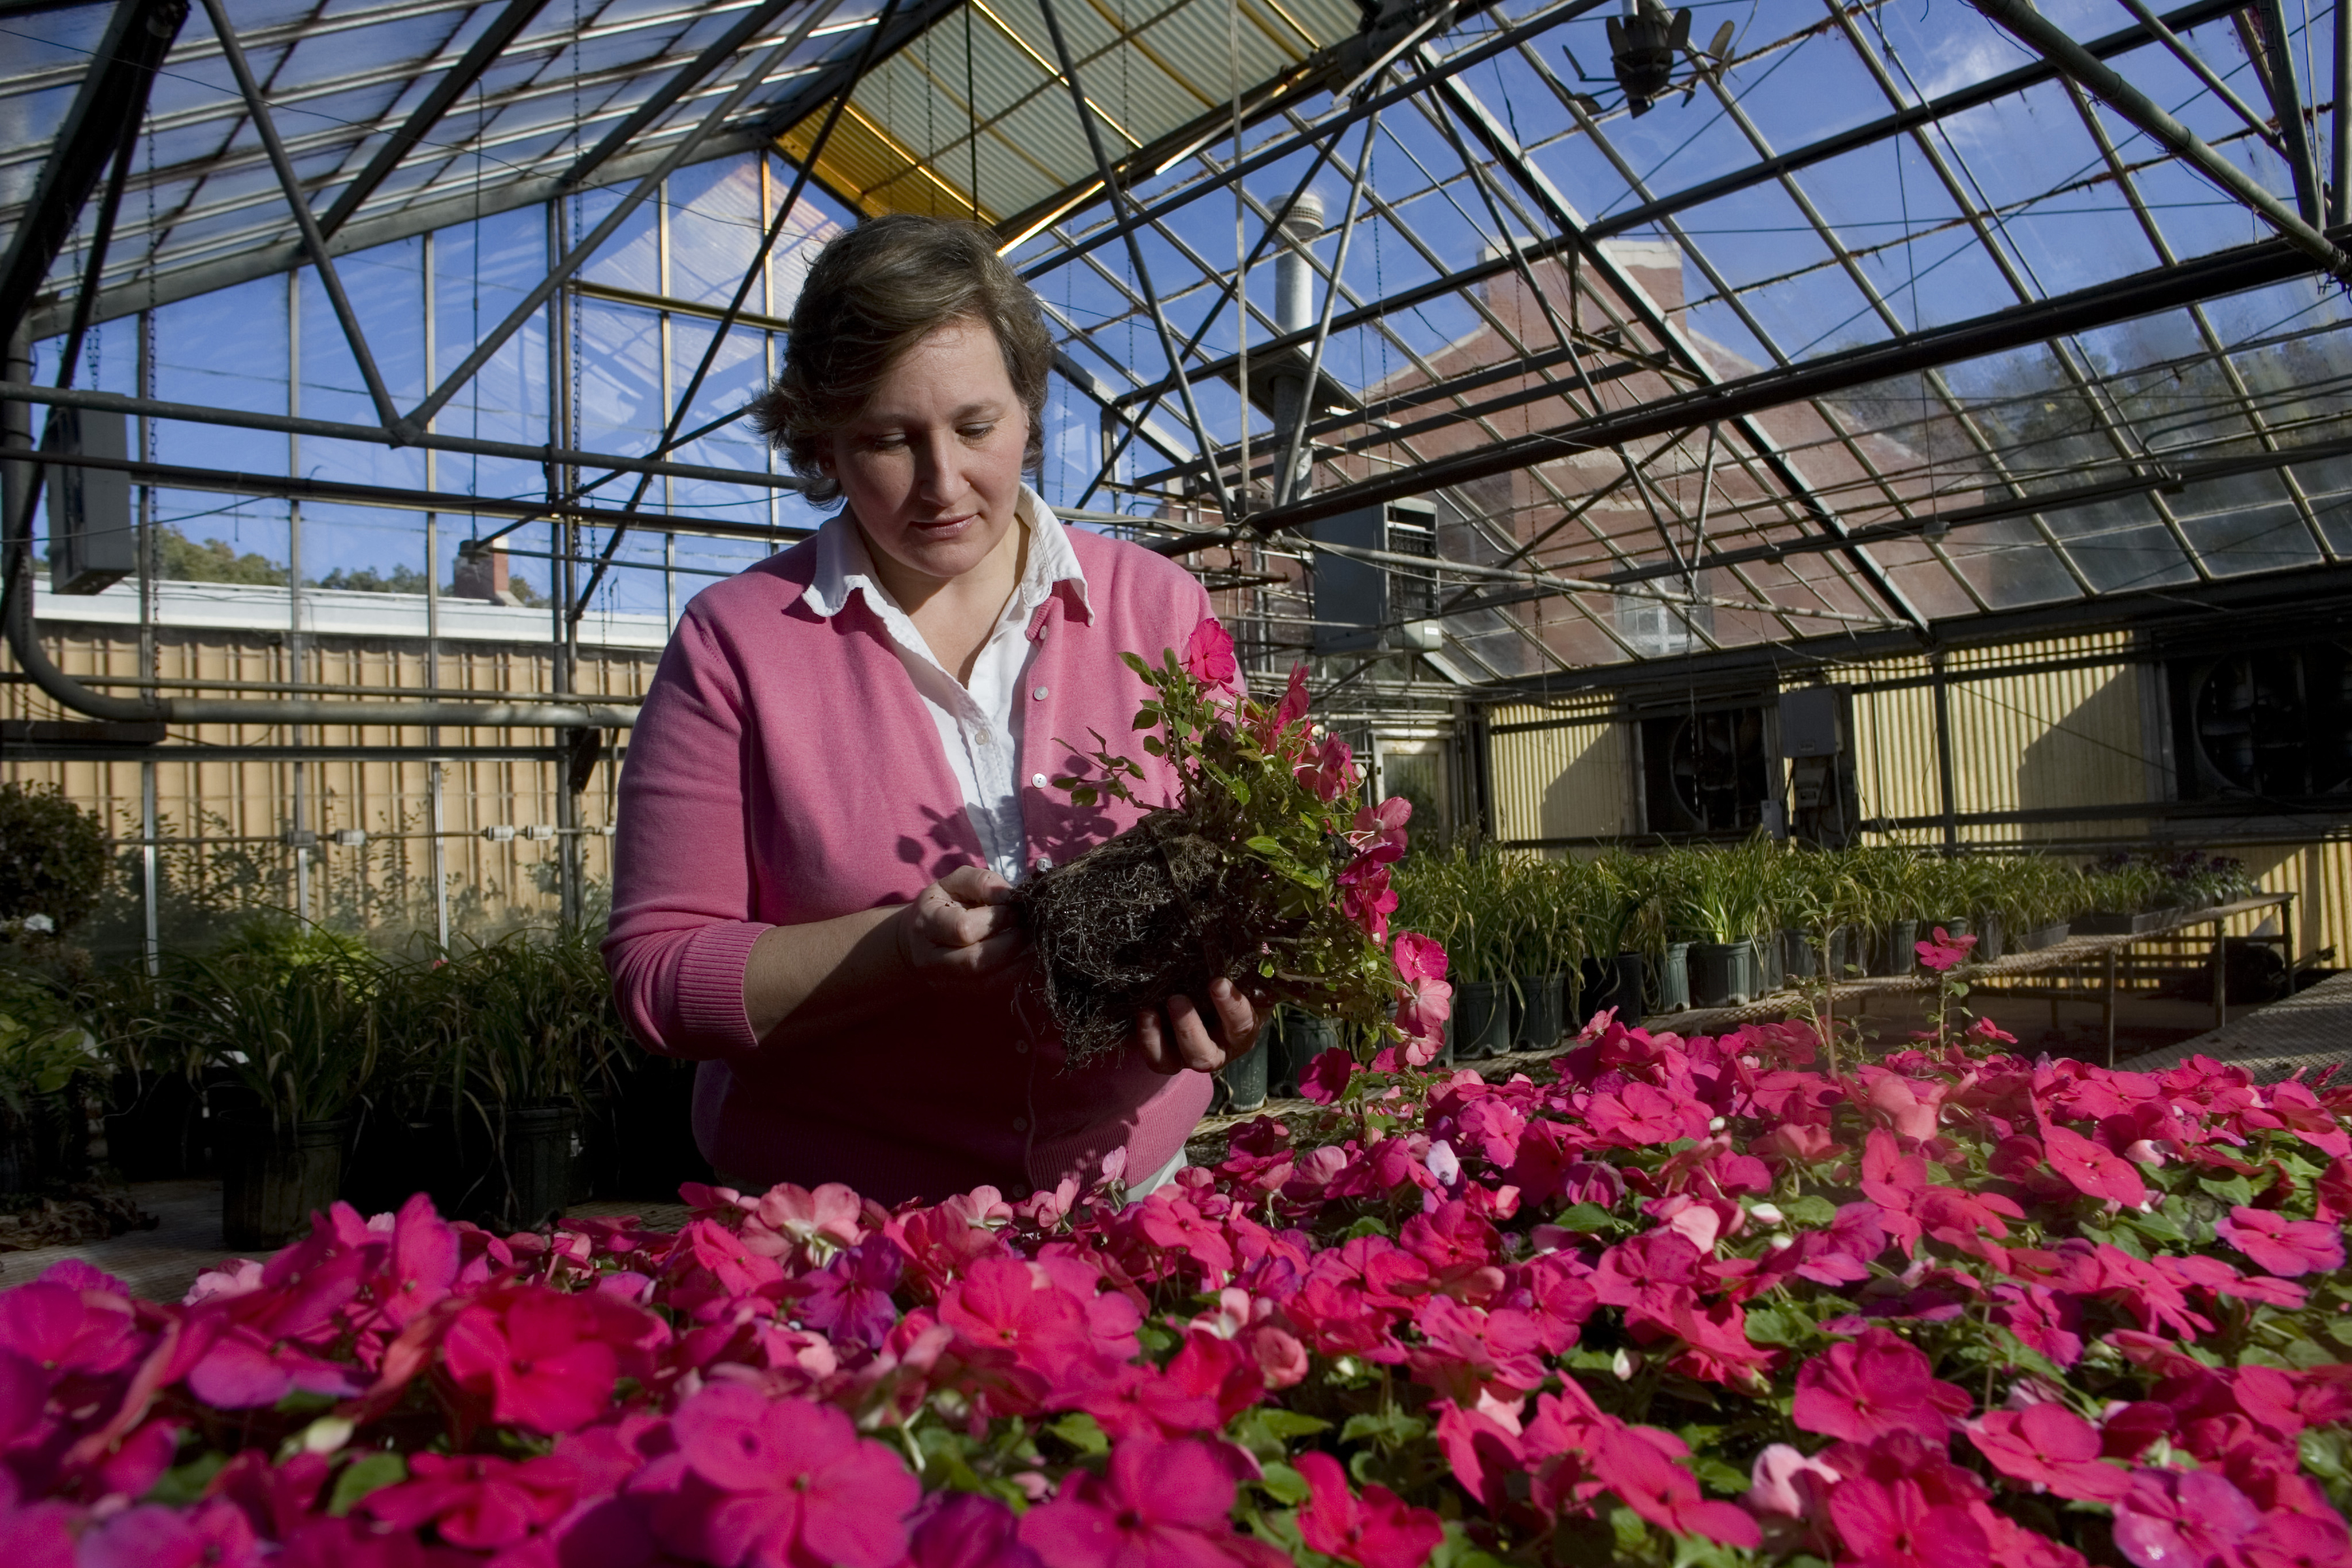 Jean Williams-Woodward, UGA CAES plant pathologist, examines impatience plant roots for signs of disease in greenhouse, Athens Campus, October 27, 2009.